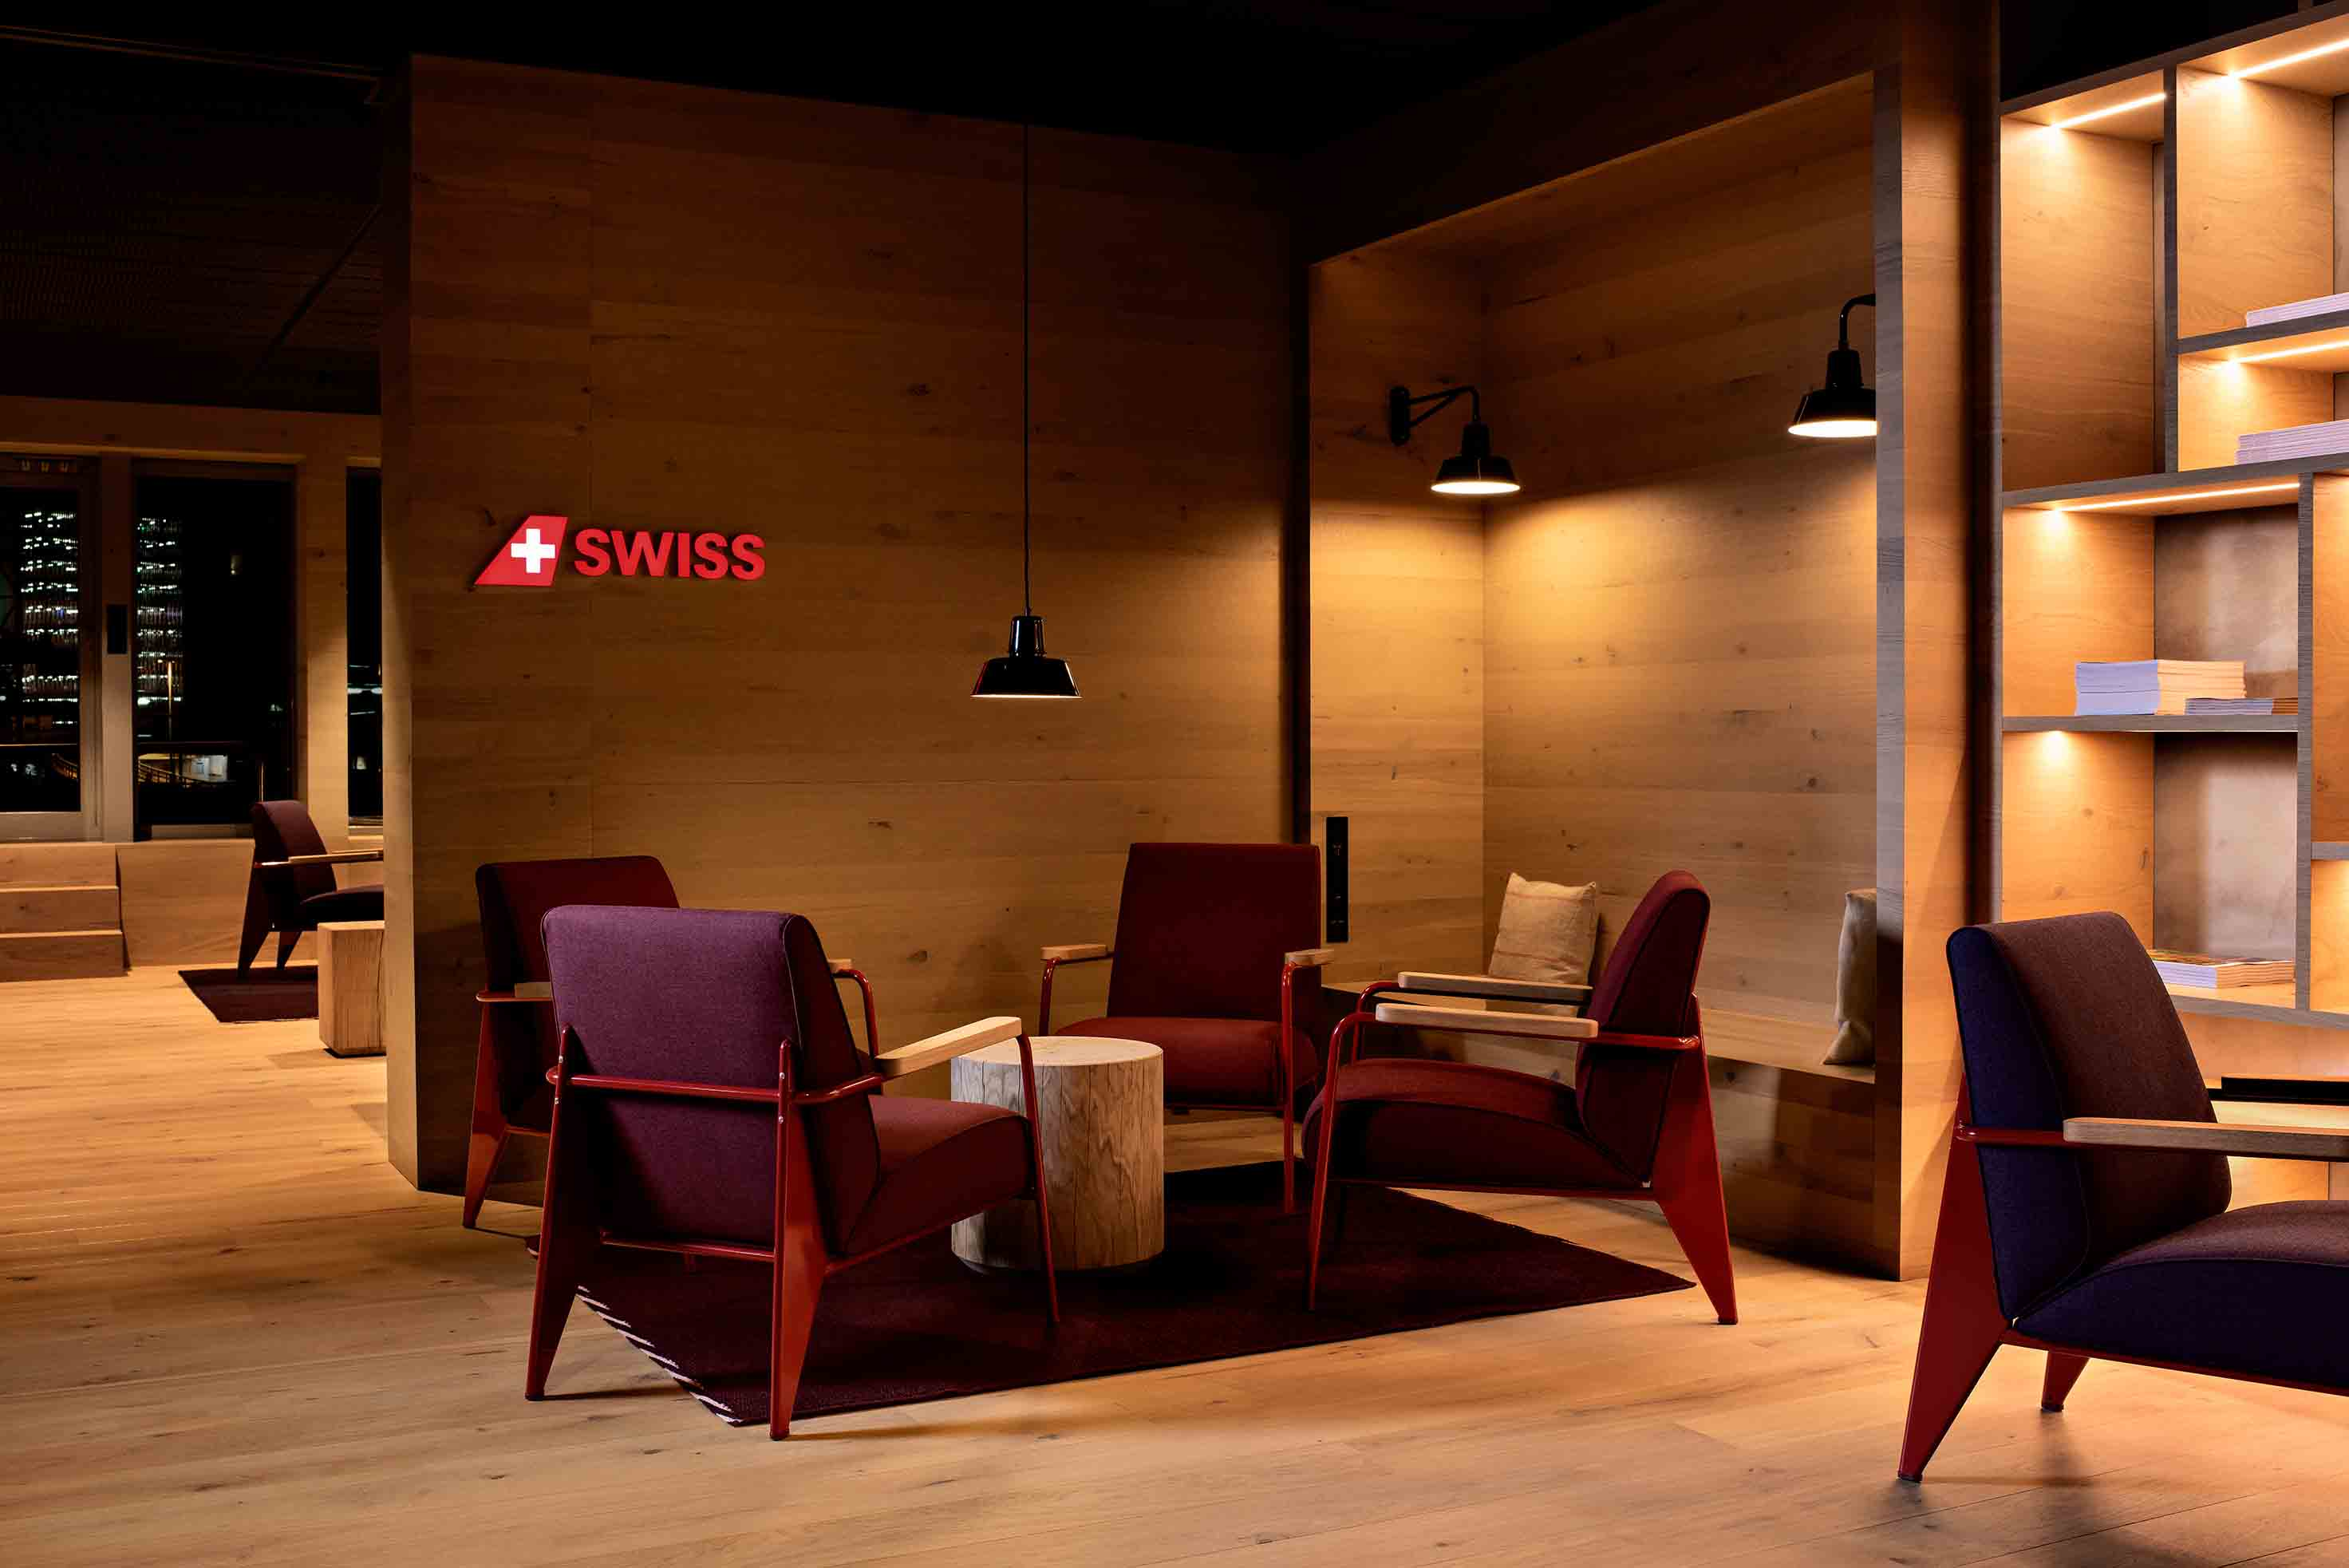 SWISS business class lounge Zurich seating